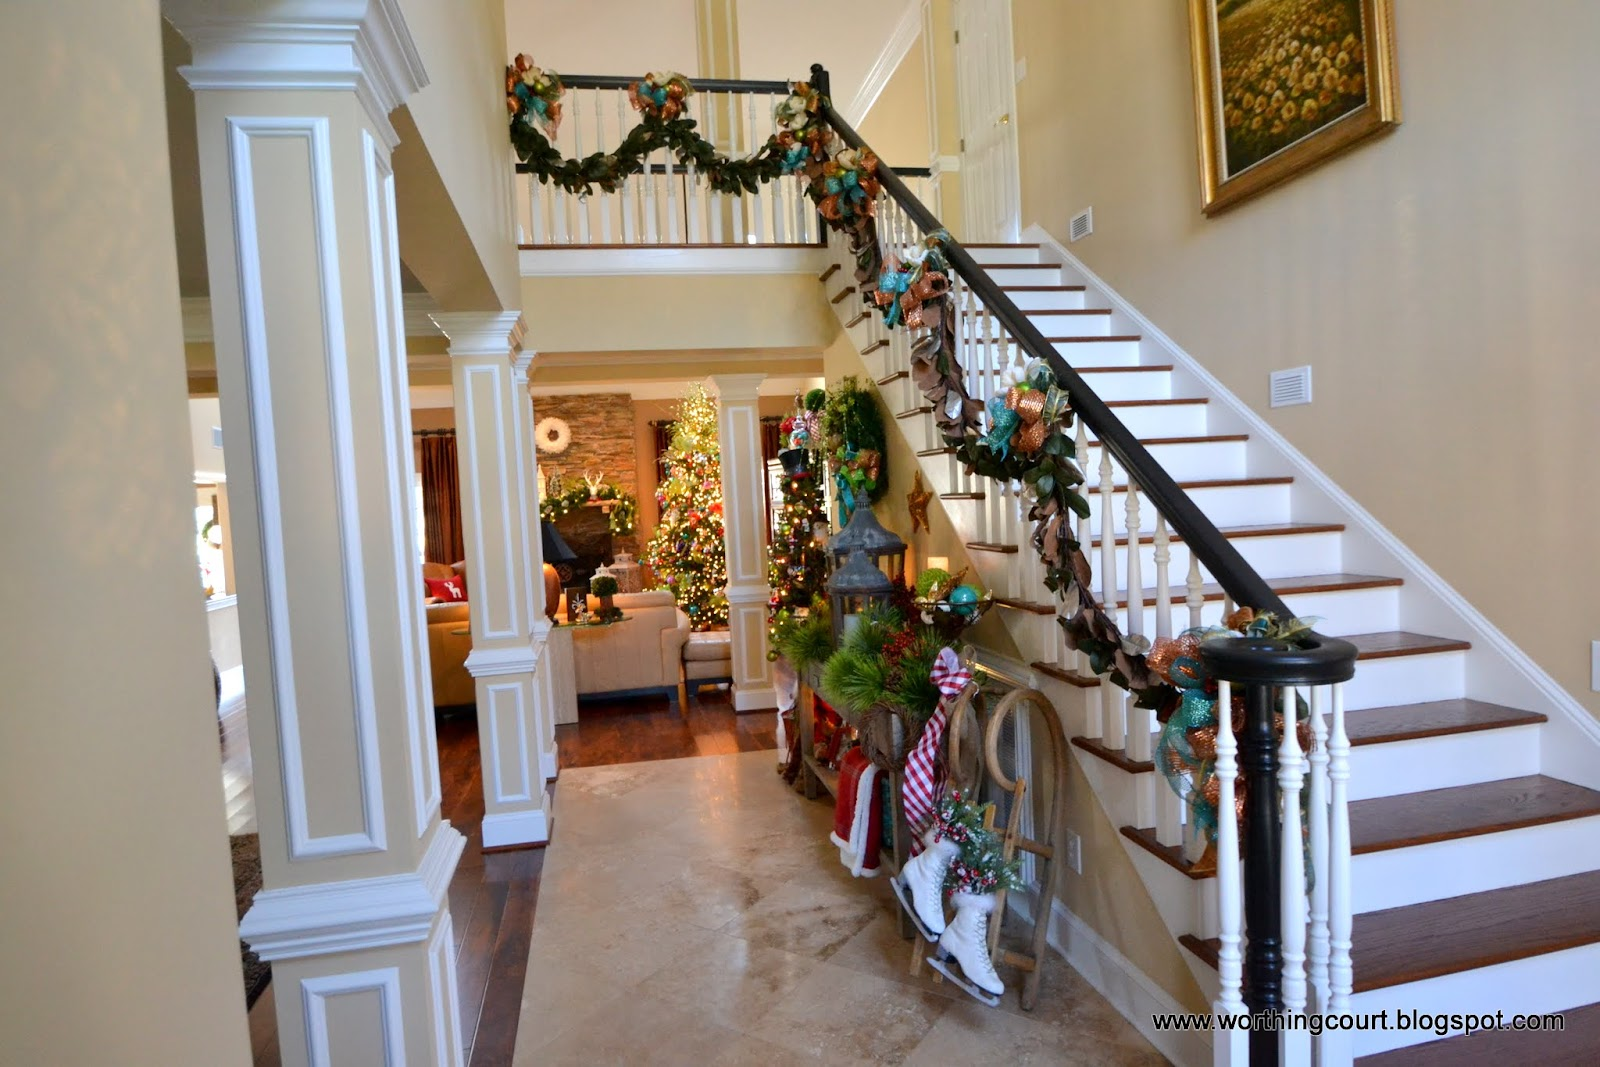 Christmas tour at nancy 39 s worthing court for Foyer christmas decorating ideas